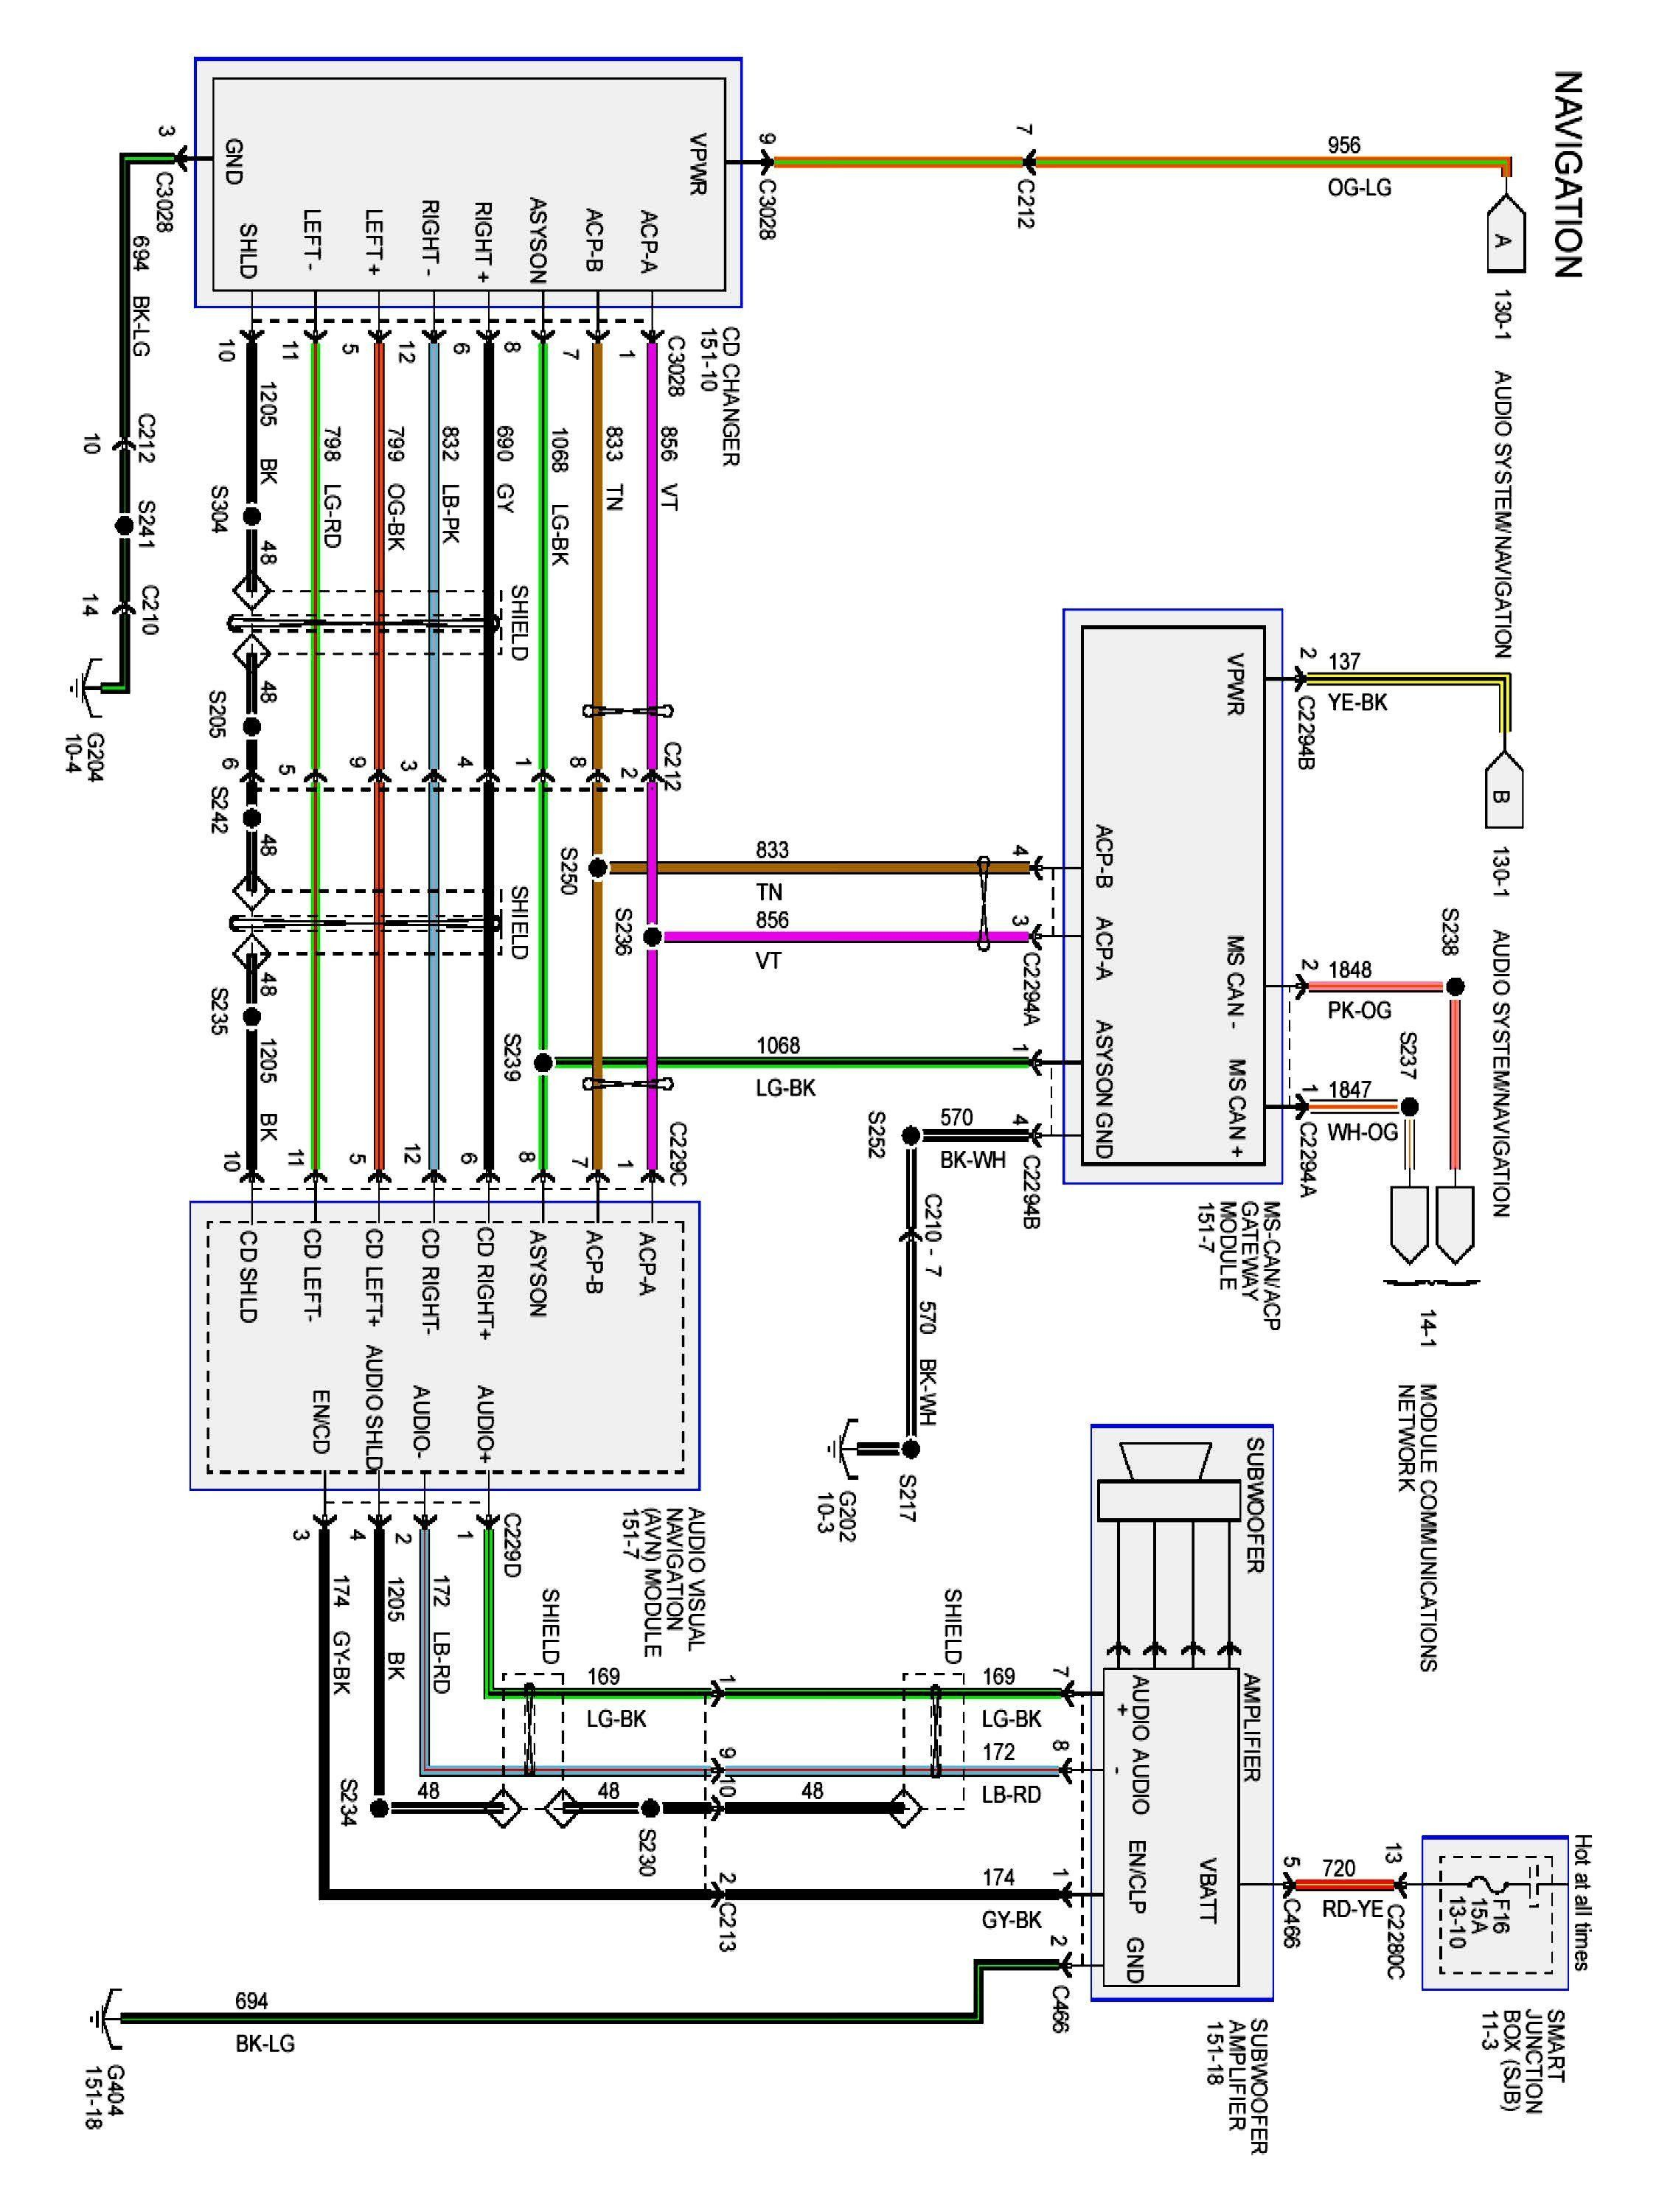 35 Best Of 2010 F150 Radio Wiring Diagram Ford Expedition Electrical Wiring Diagram Trailer Wiring Diagram